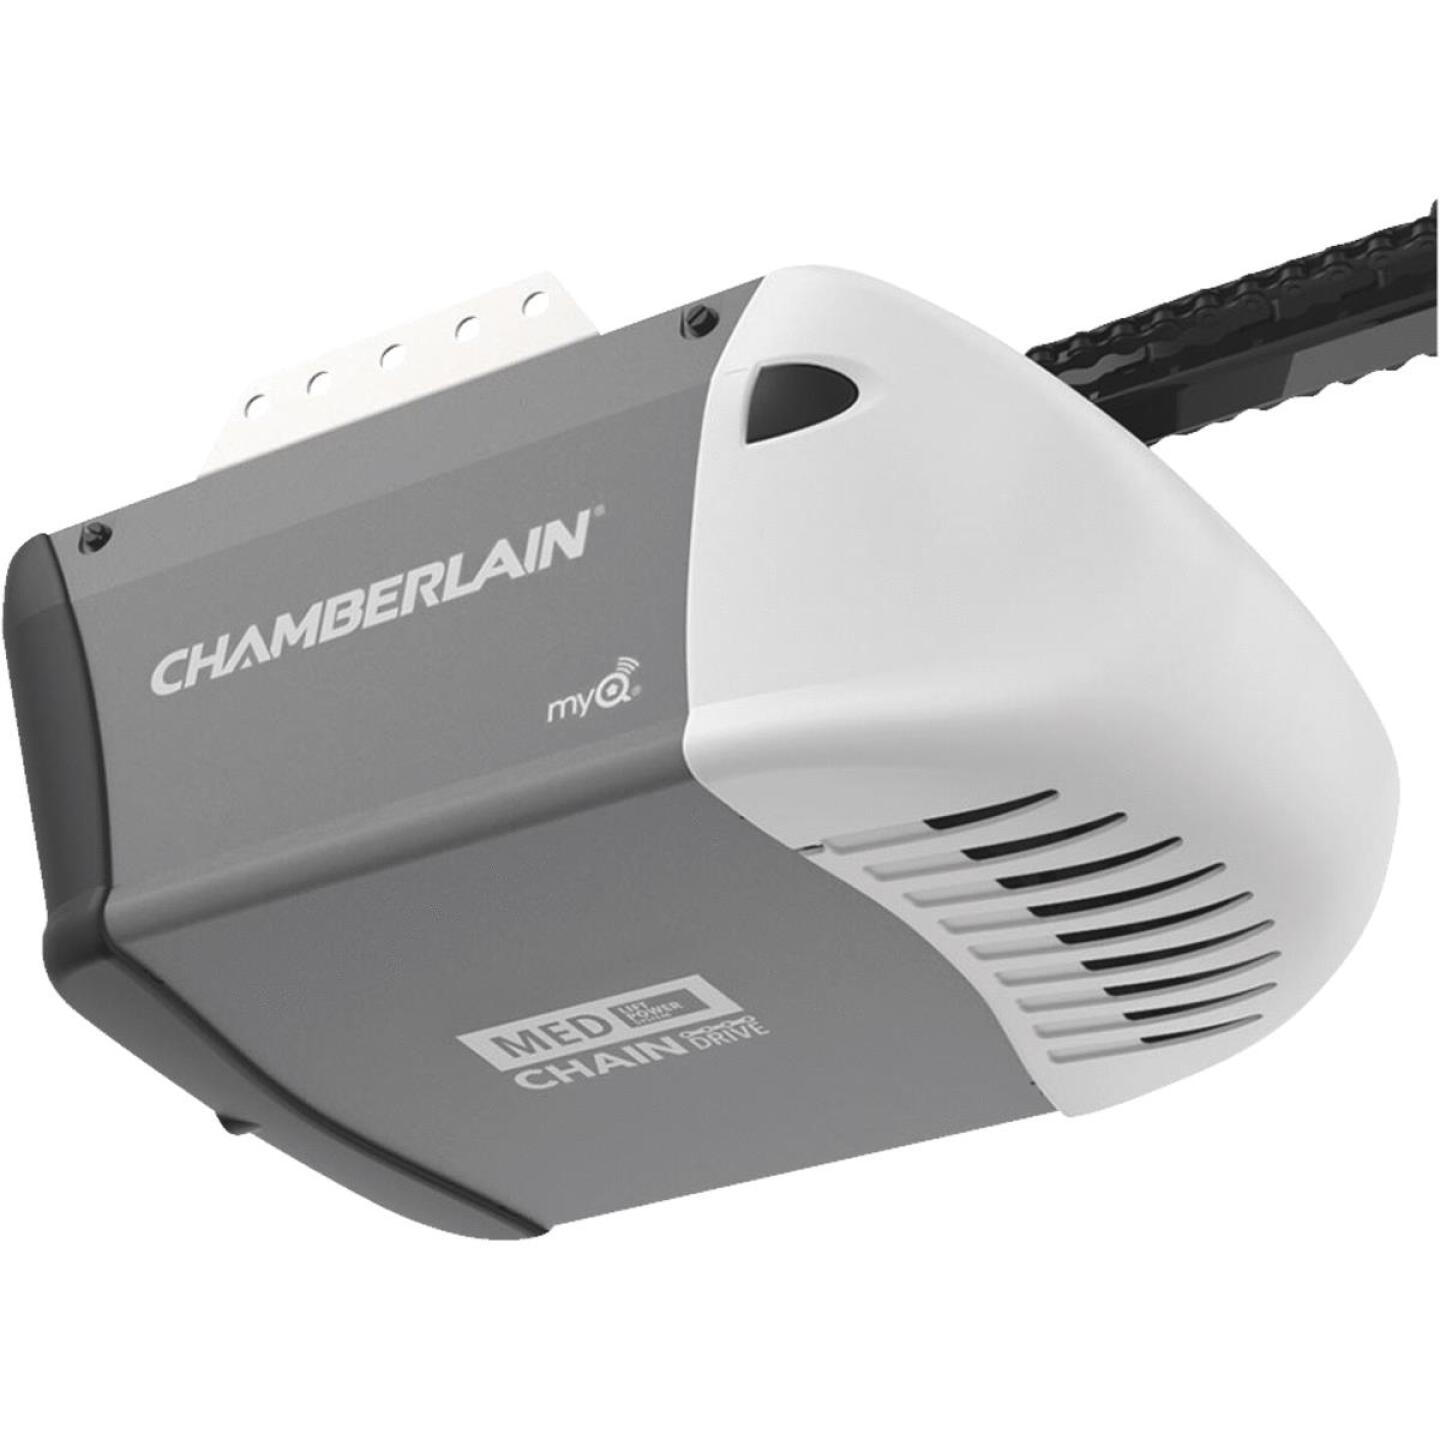 Chamberlain C-203 1/2 HP Durable Chain Drive Garage Door Opener with MED Lifting Power Image 2